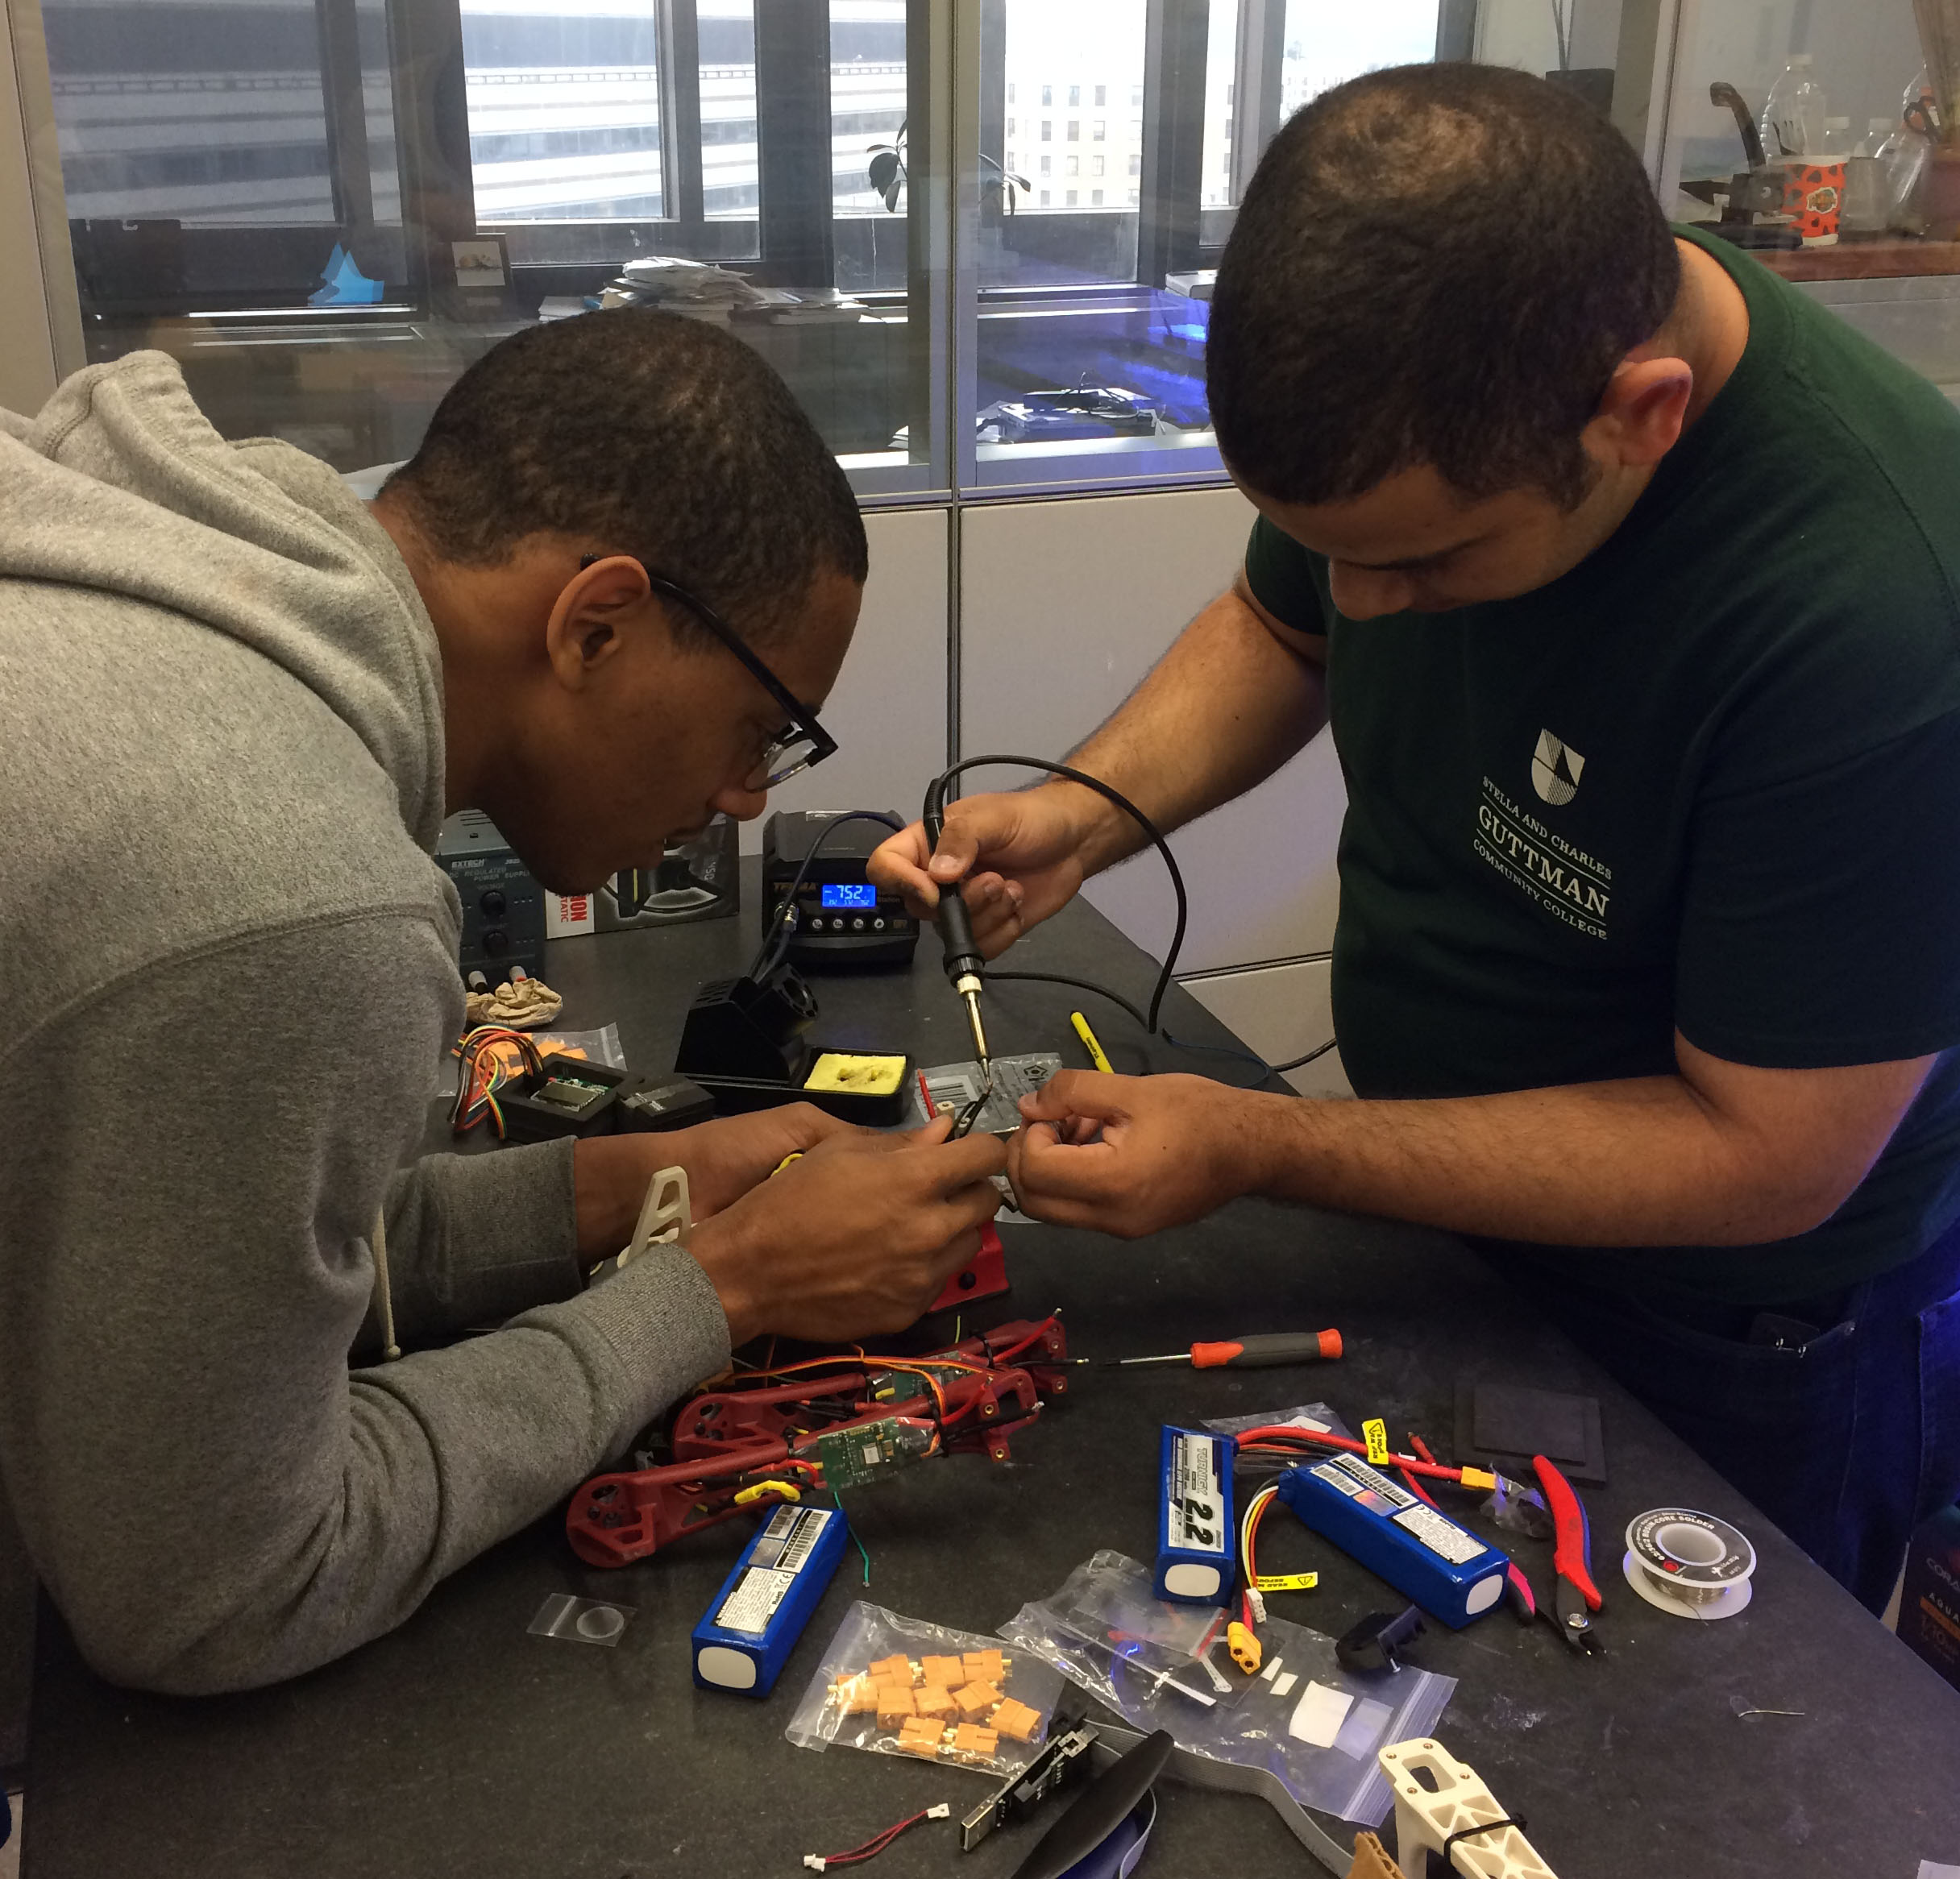 Miguel Hidalgo Almonte and Marcos Fermin Lopez working on the quadcopter at City College.